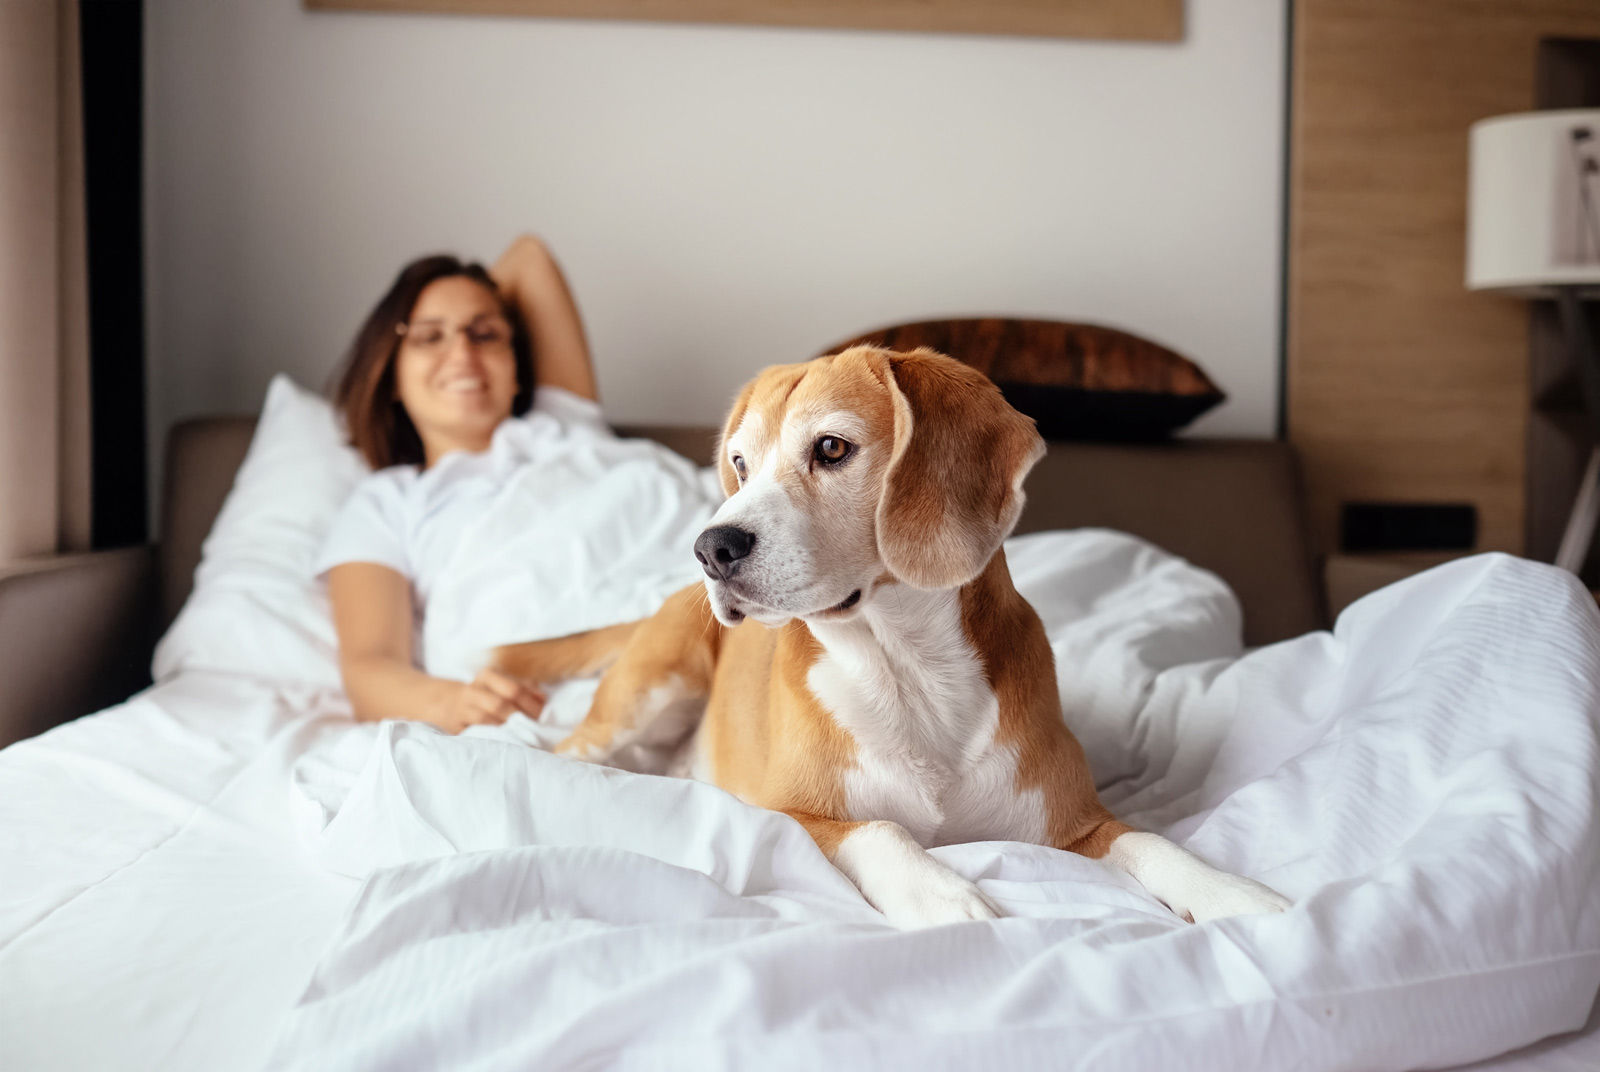 Ensure that Fido is safe and comfortable when staying at pet-friendly hotels in Medicine Hat.